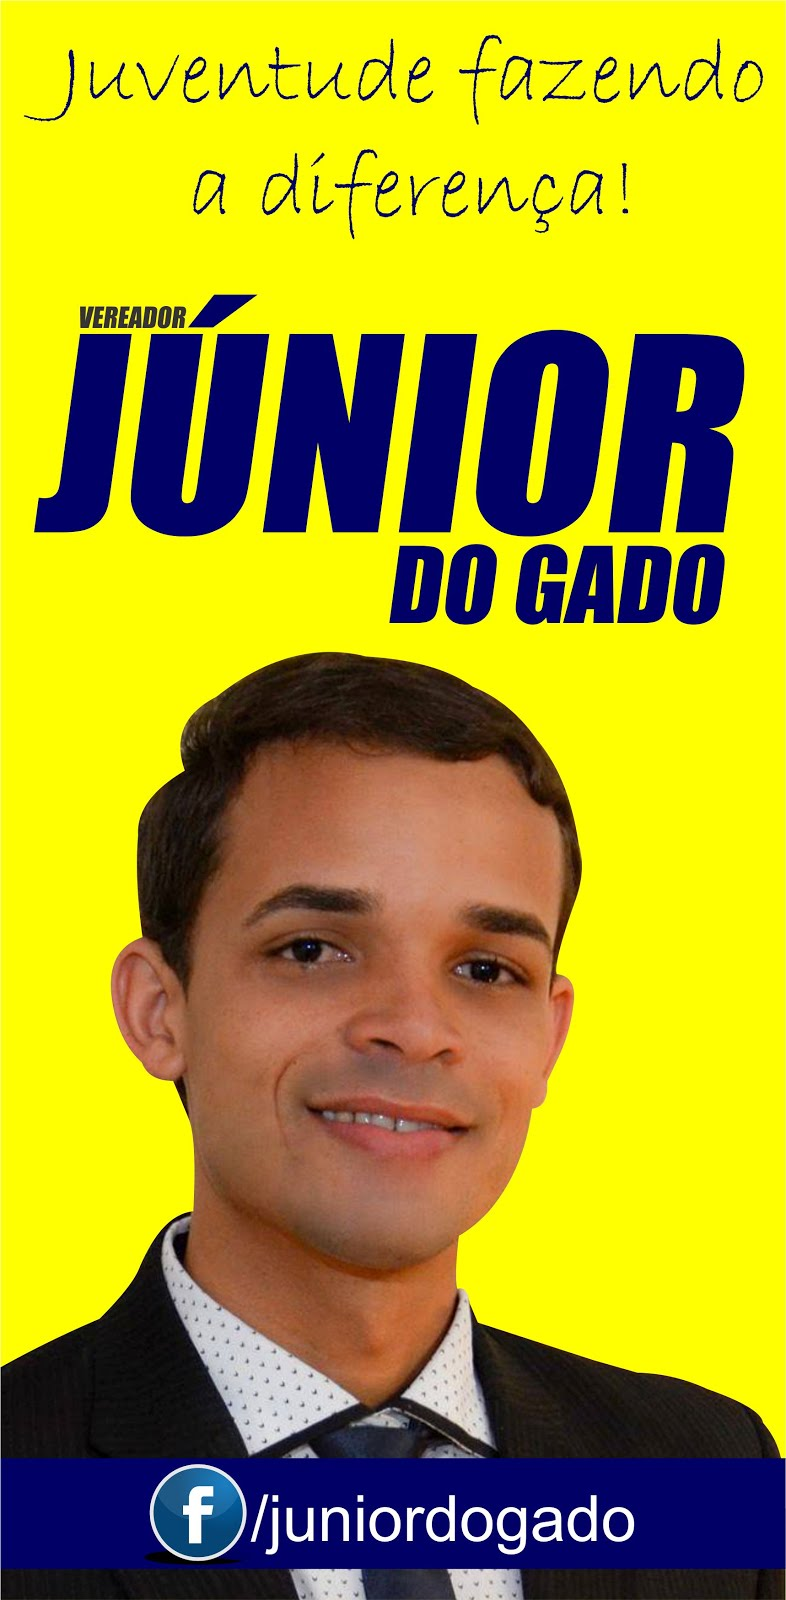 Vereador Júnior do Gado está no Facebook